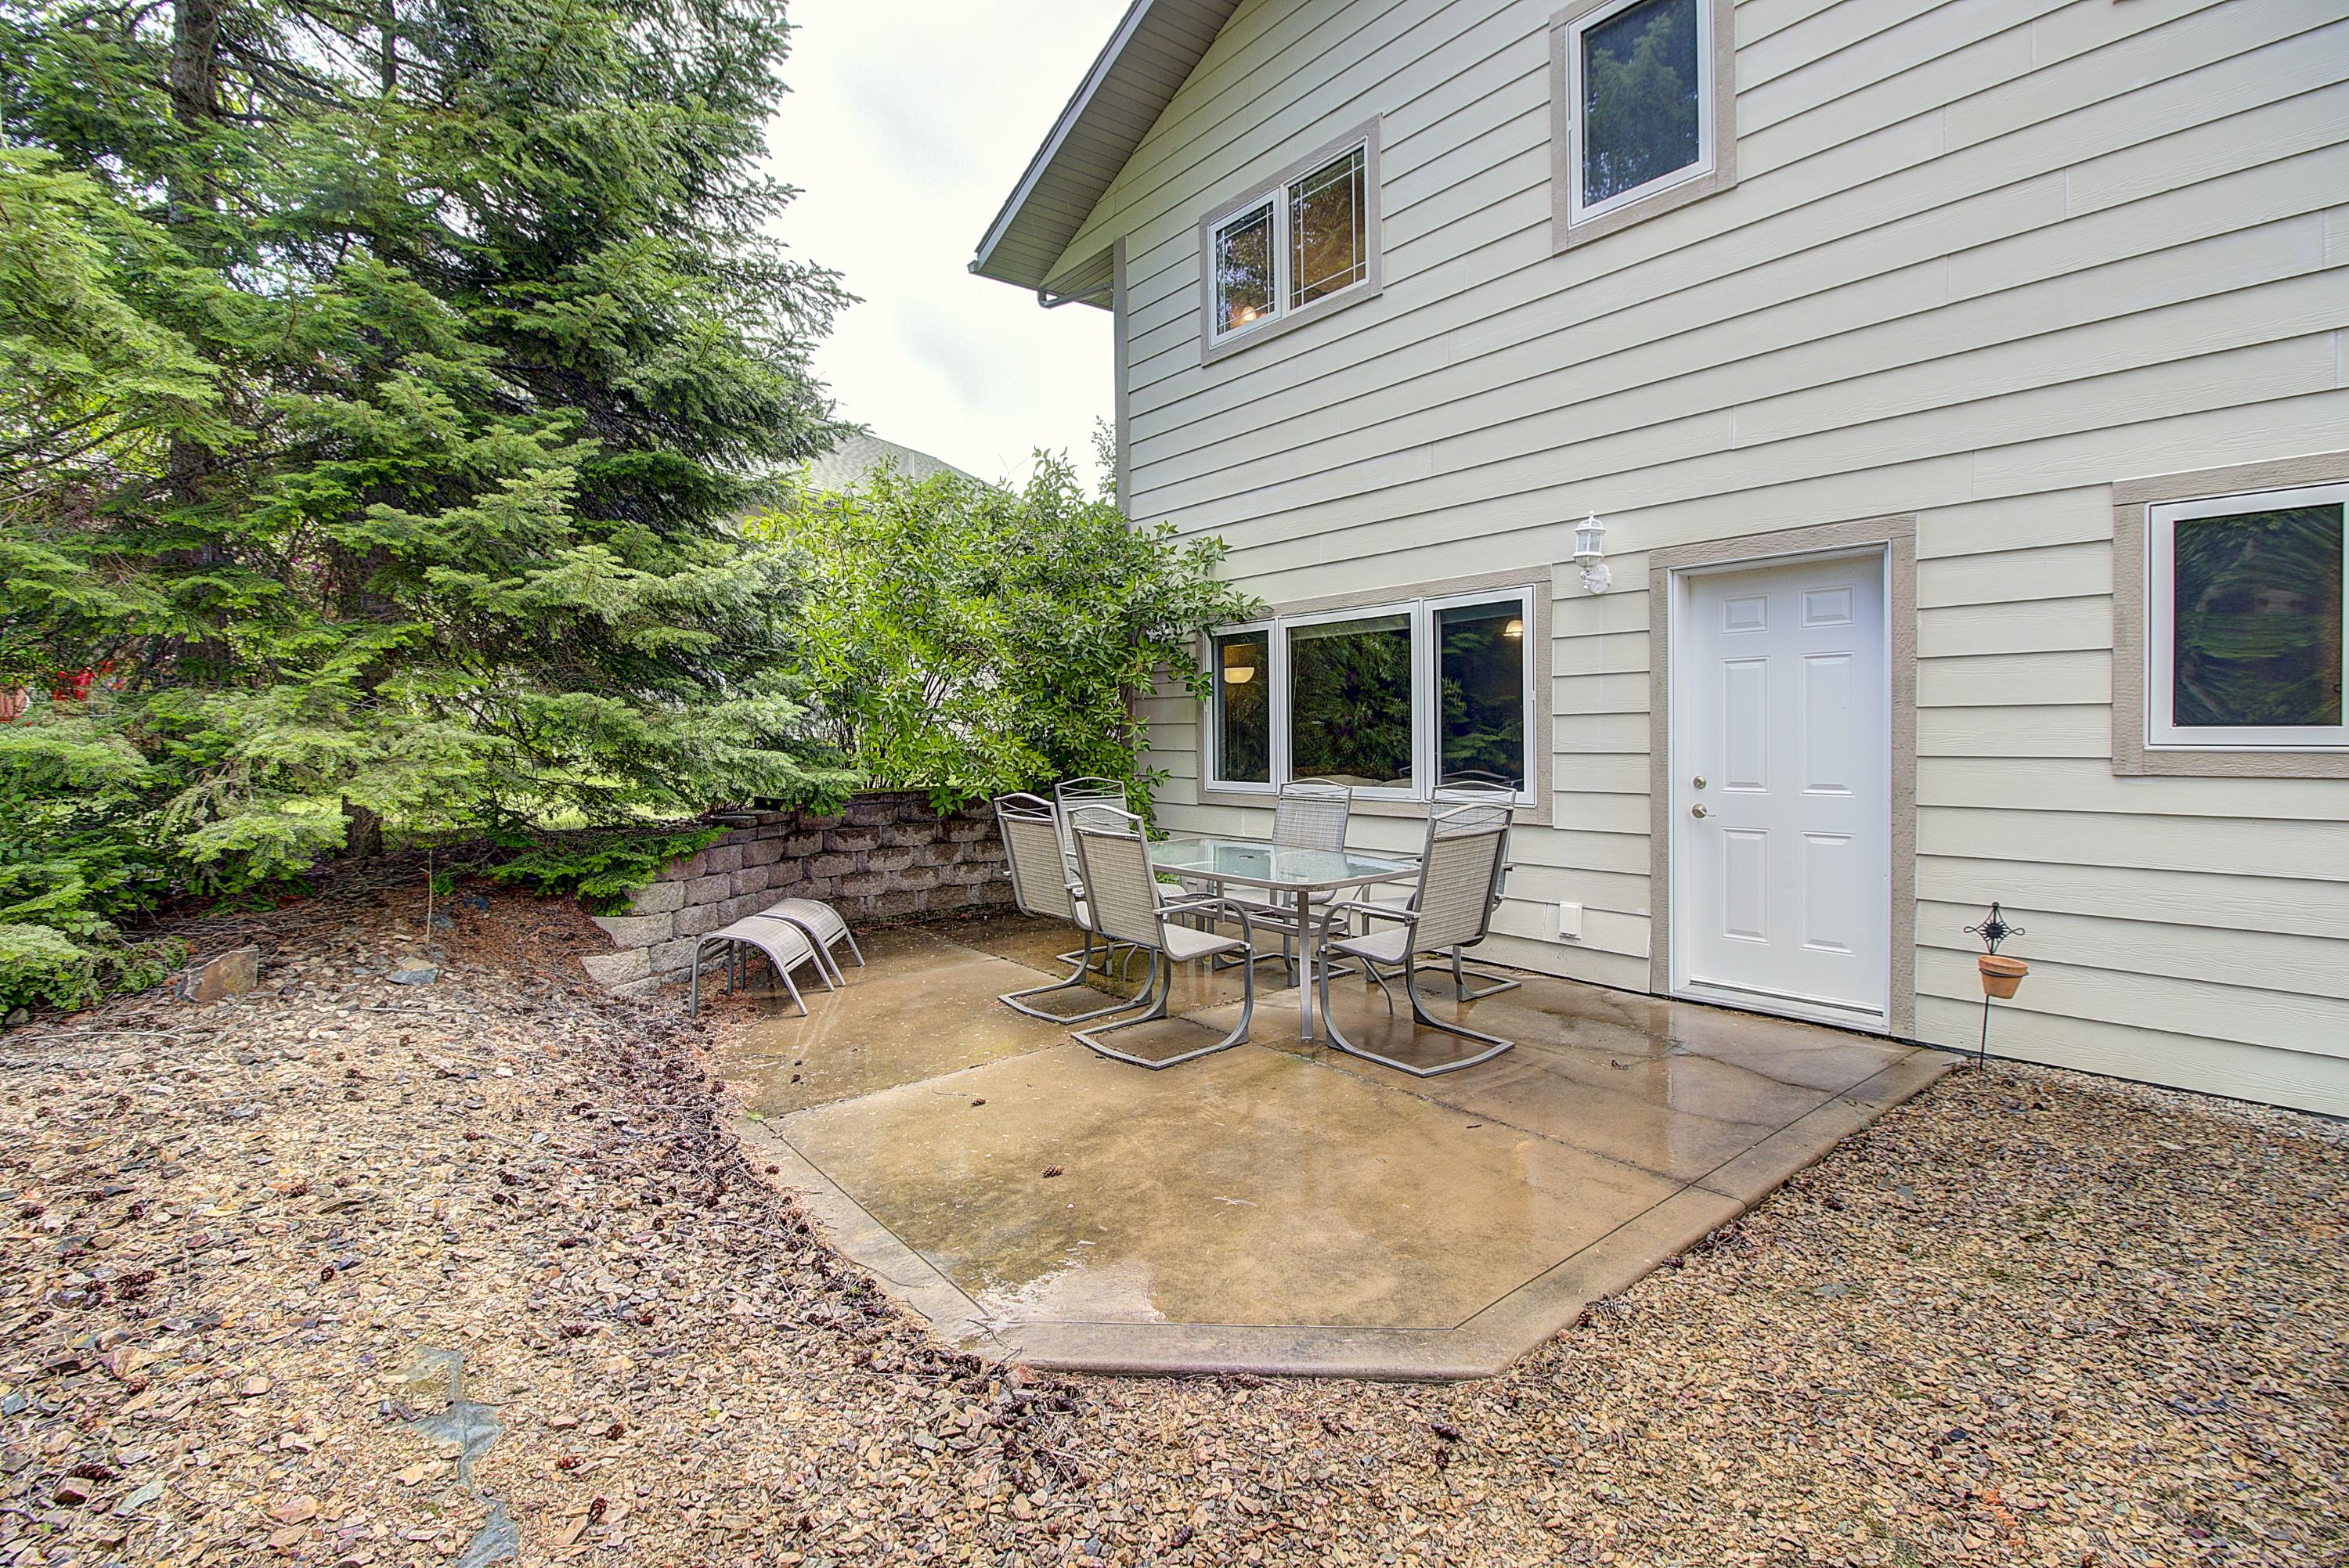 2nd Patio, Lower level